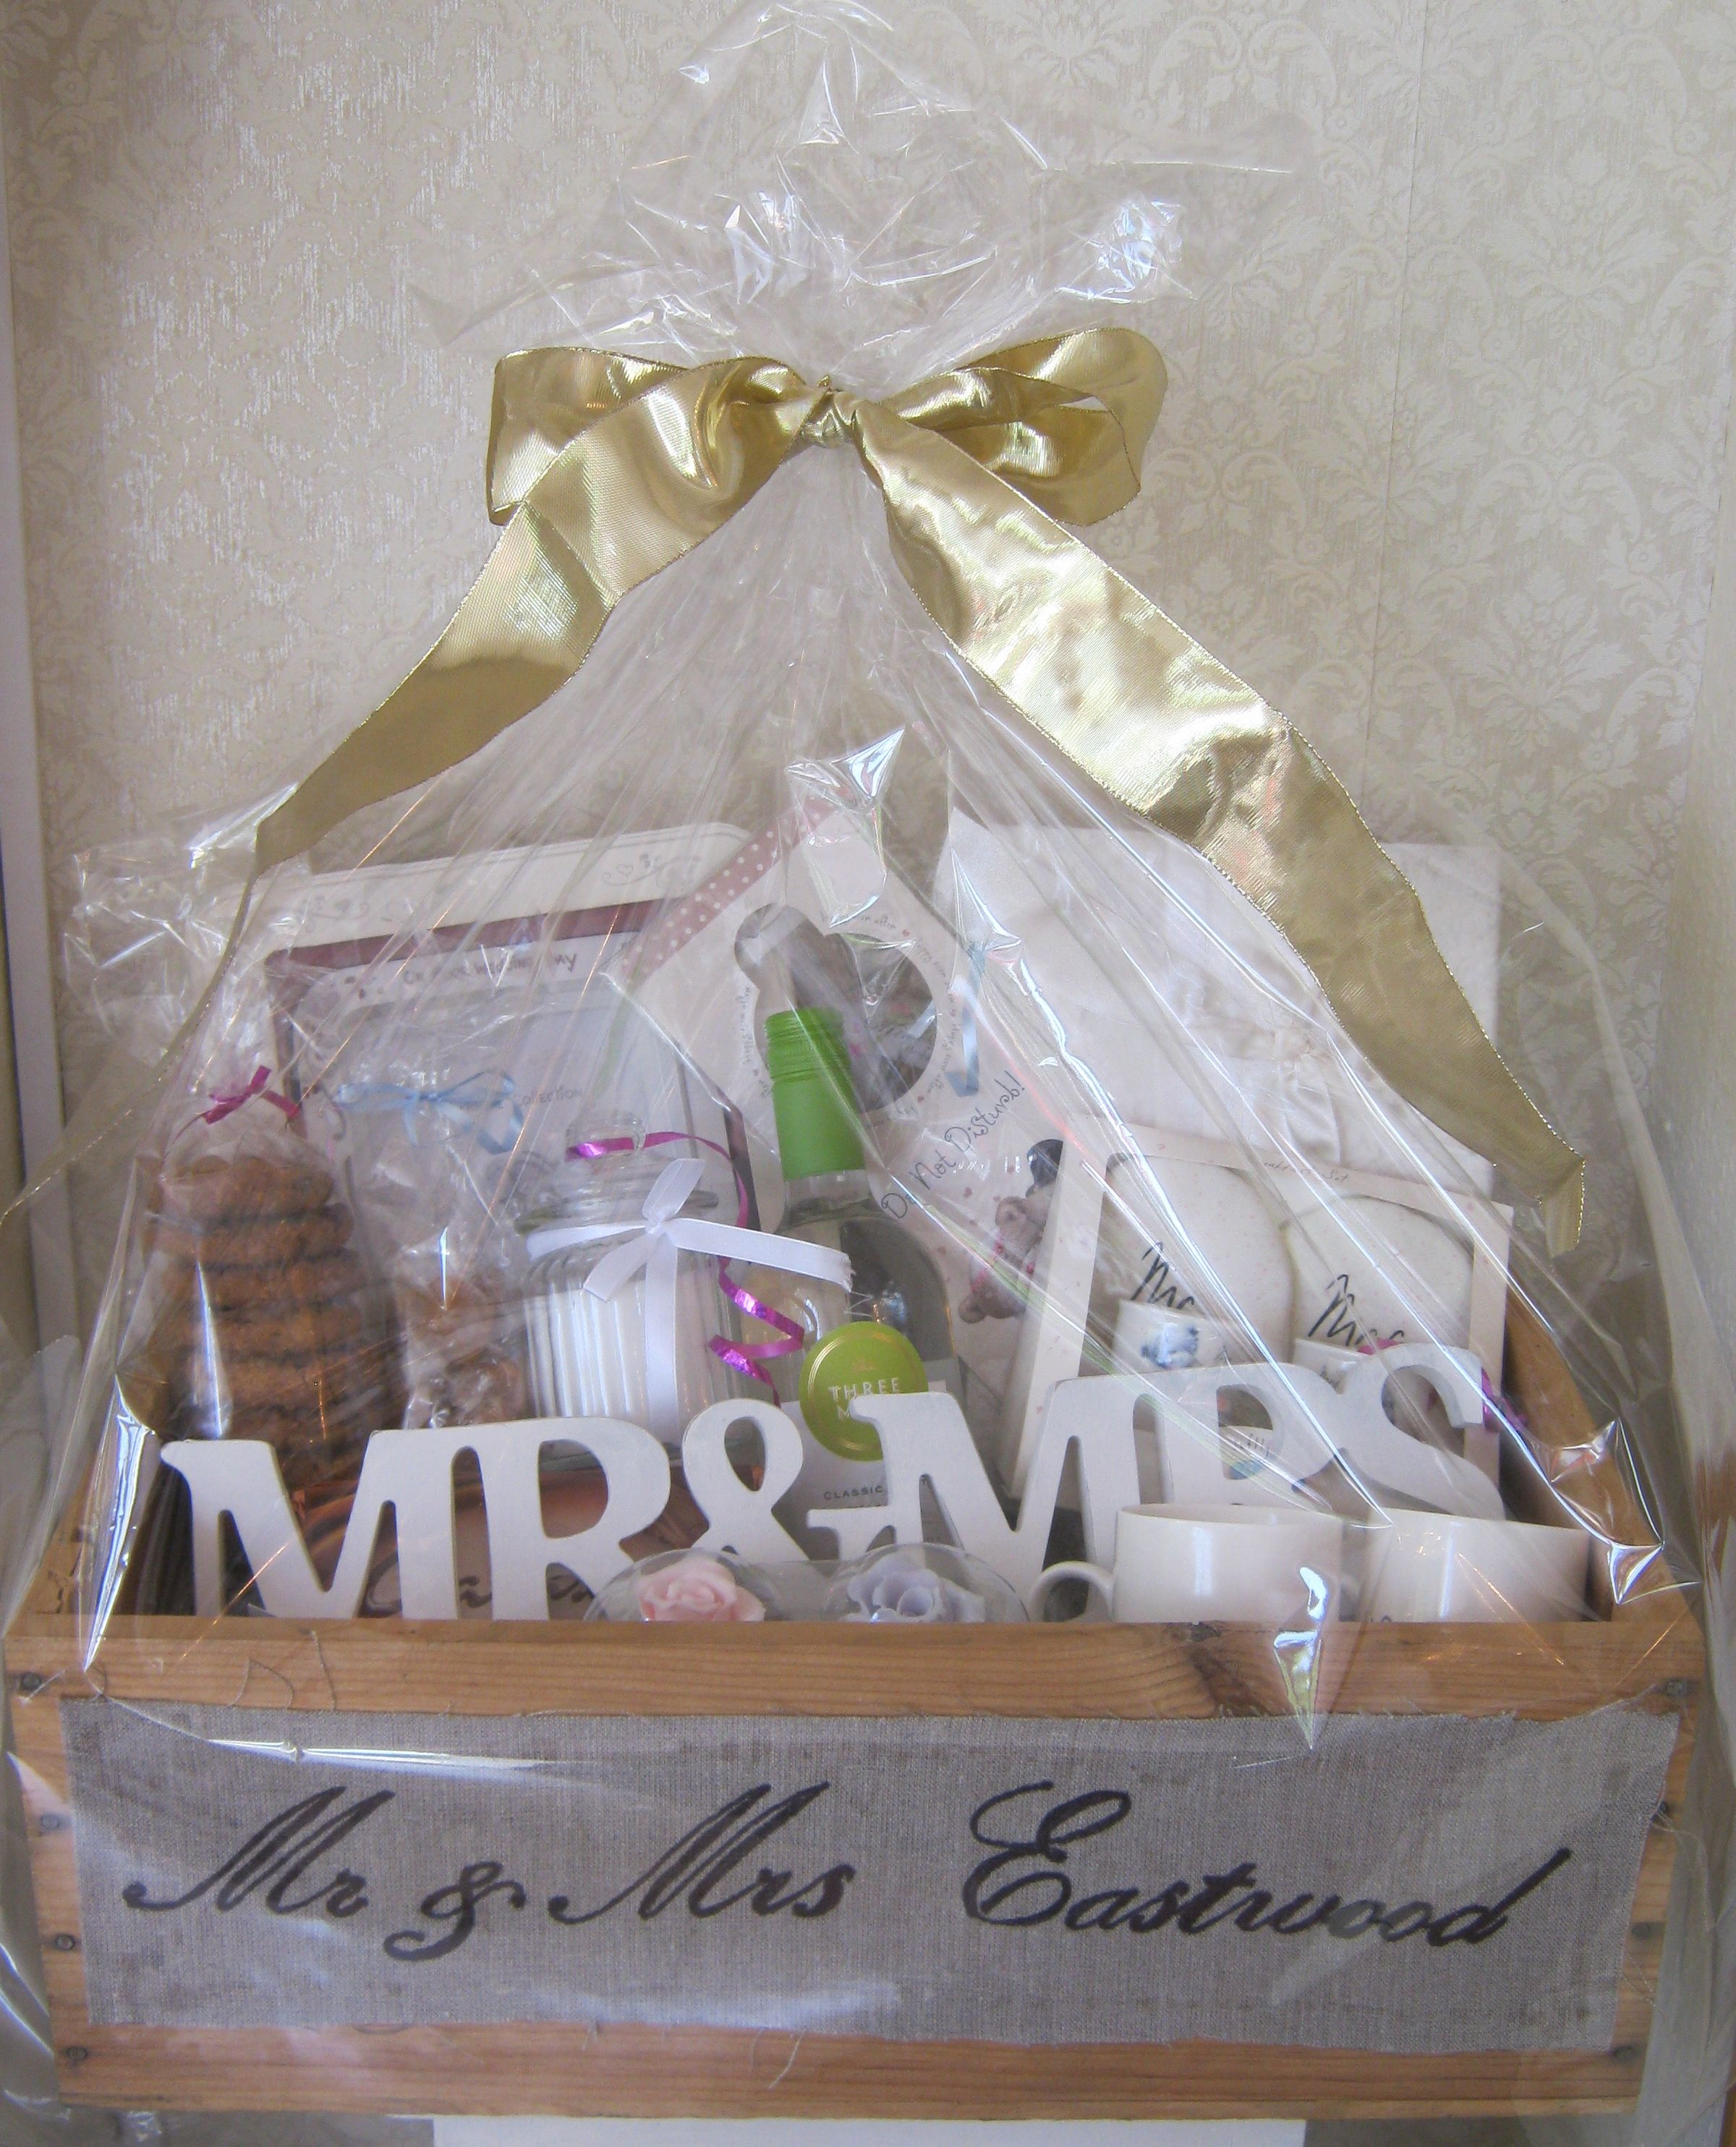 Wedding Hamper www.chic-dreams.co.uk Chic Dreams Shop Pinterest